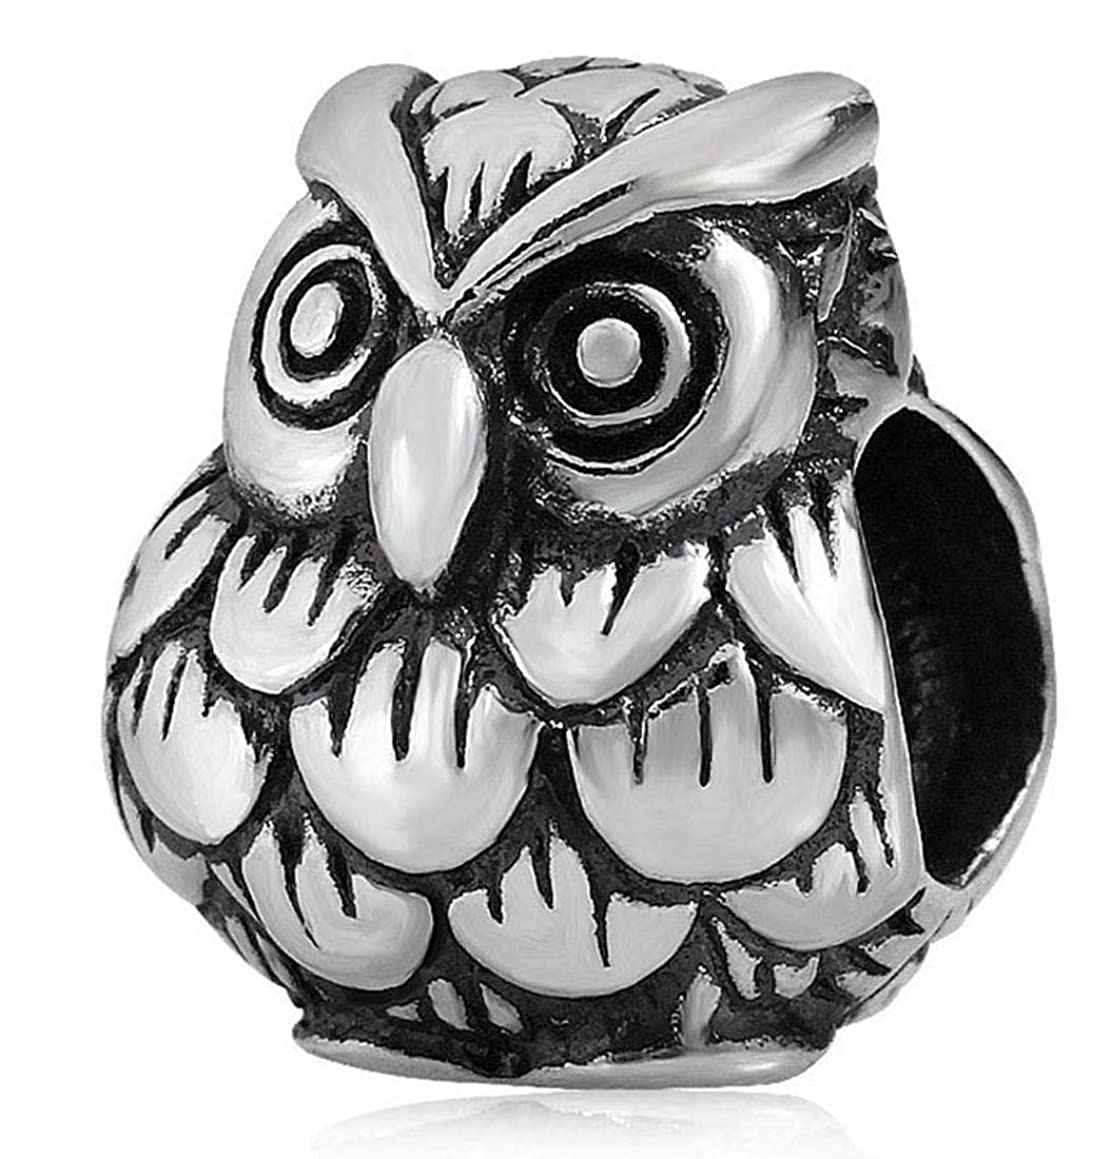 Beautiful Sterling Silver Owl King Charm Wisdom Animal Bead fit All Charm Bracelet for Women Girls Mother's Gifts EC164